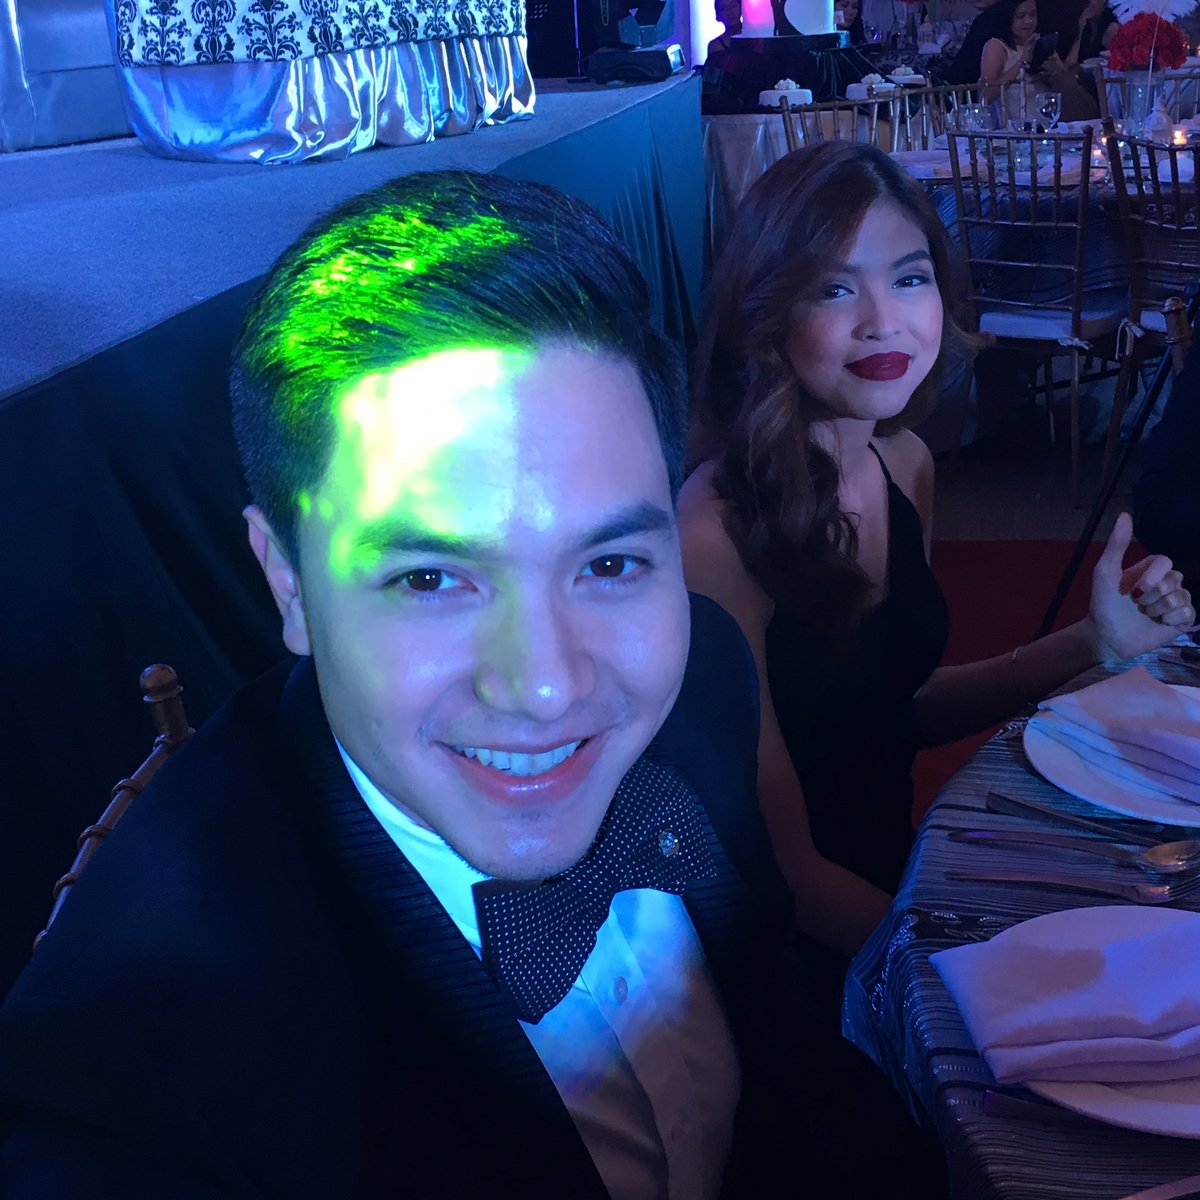 Yung binati niya ako while i was taking their pics! #ADNTimeless2016 love u both! https://t.co/khI5iUrYsX